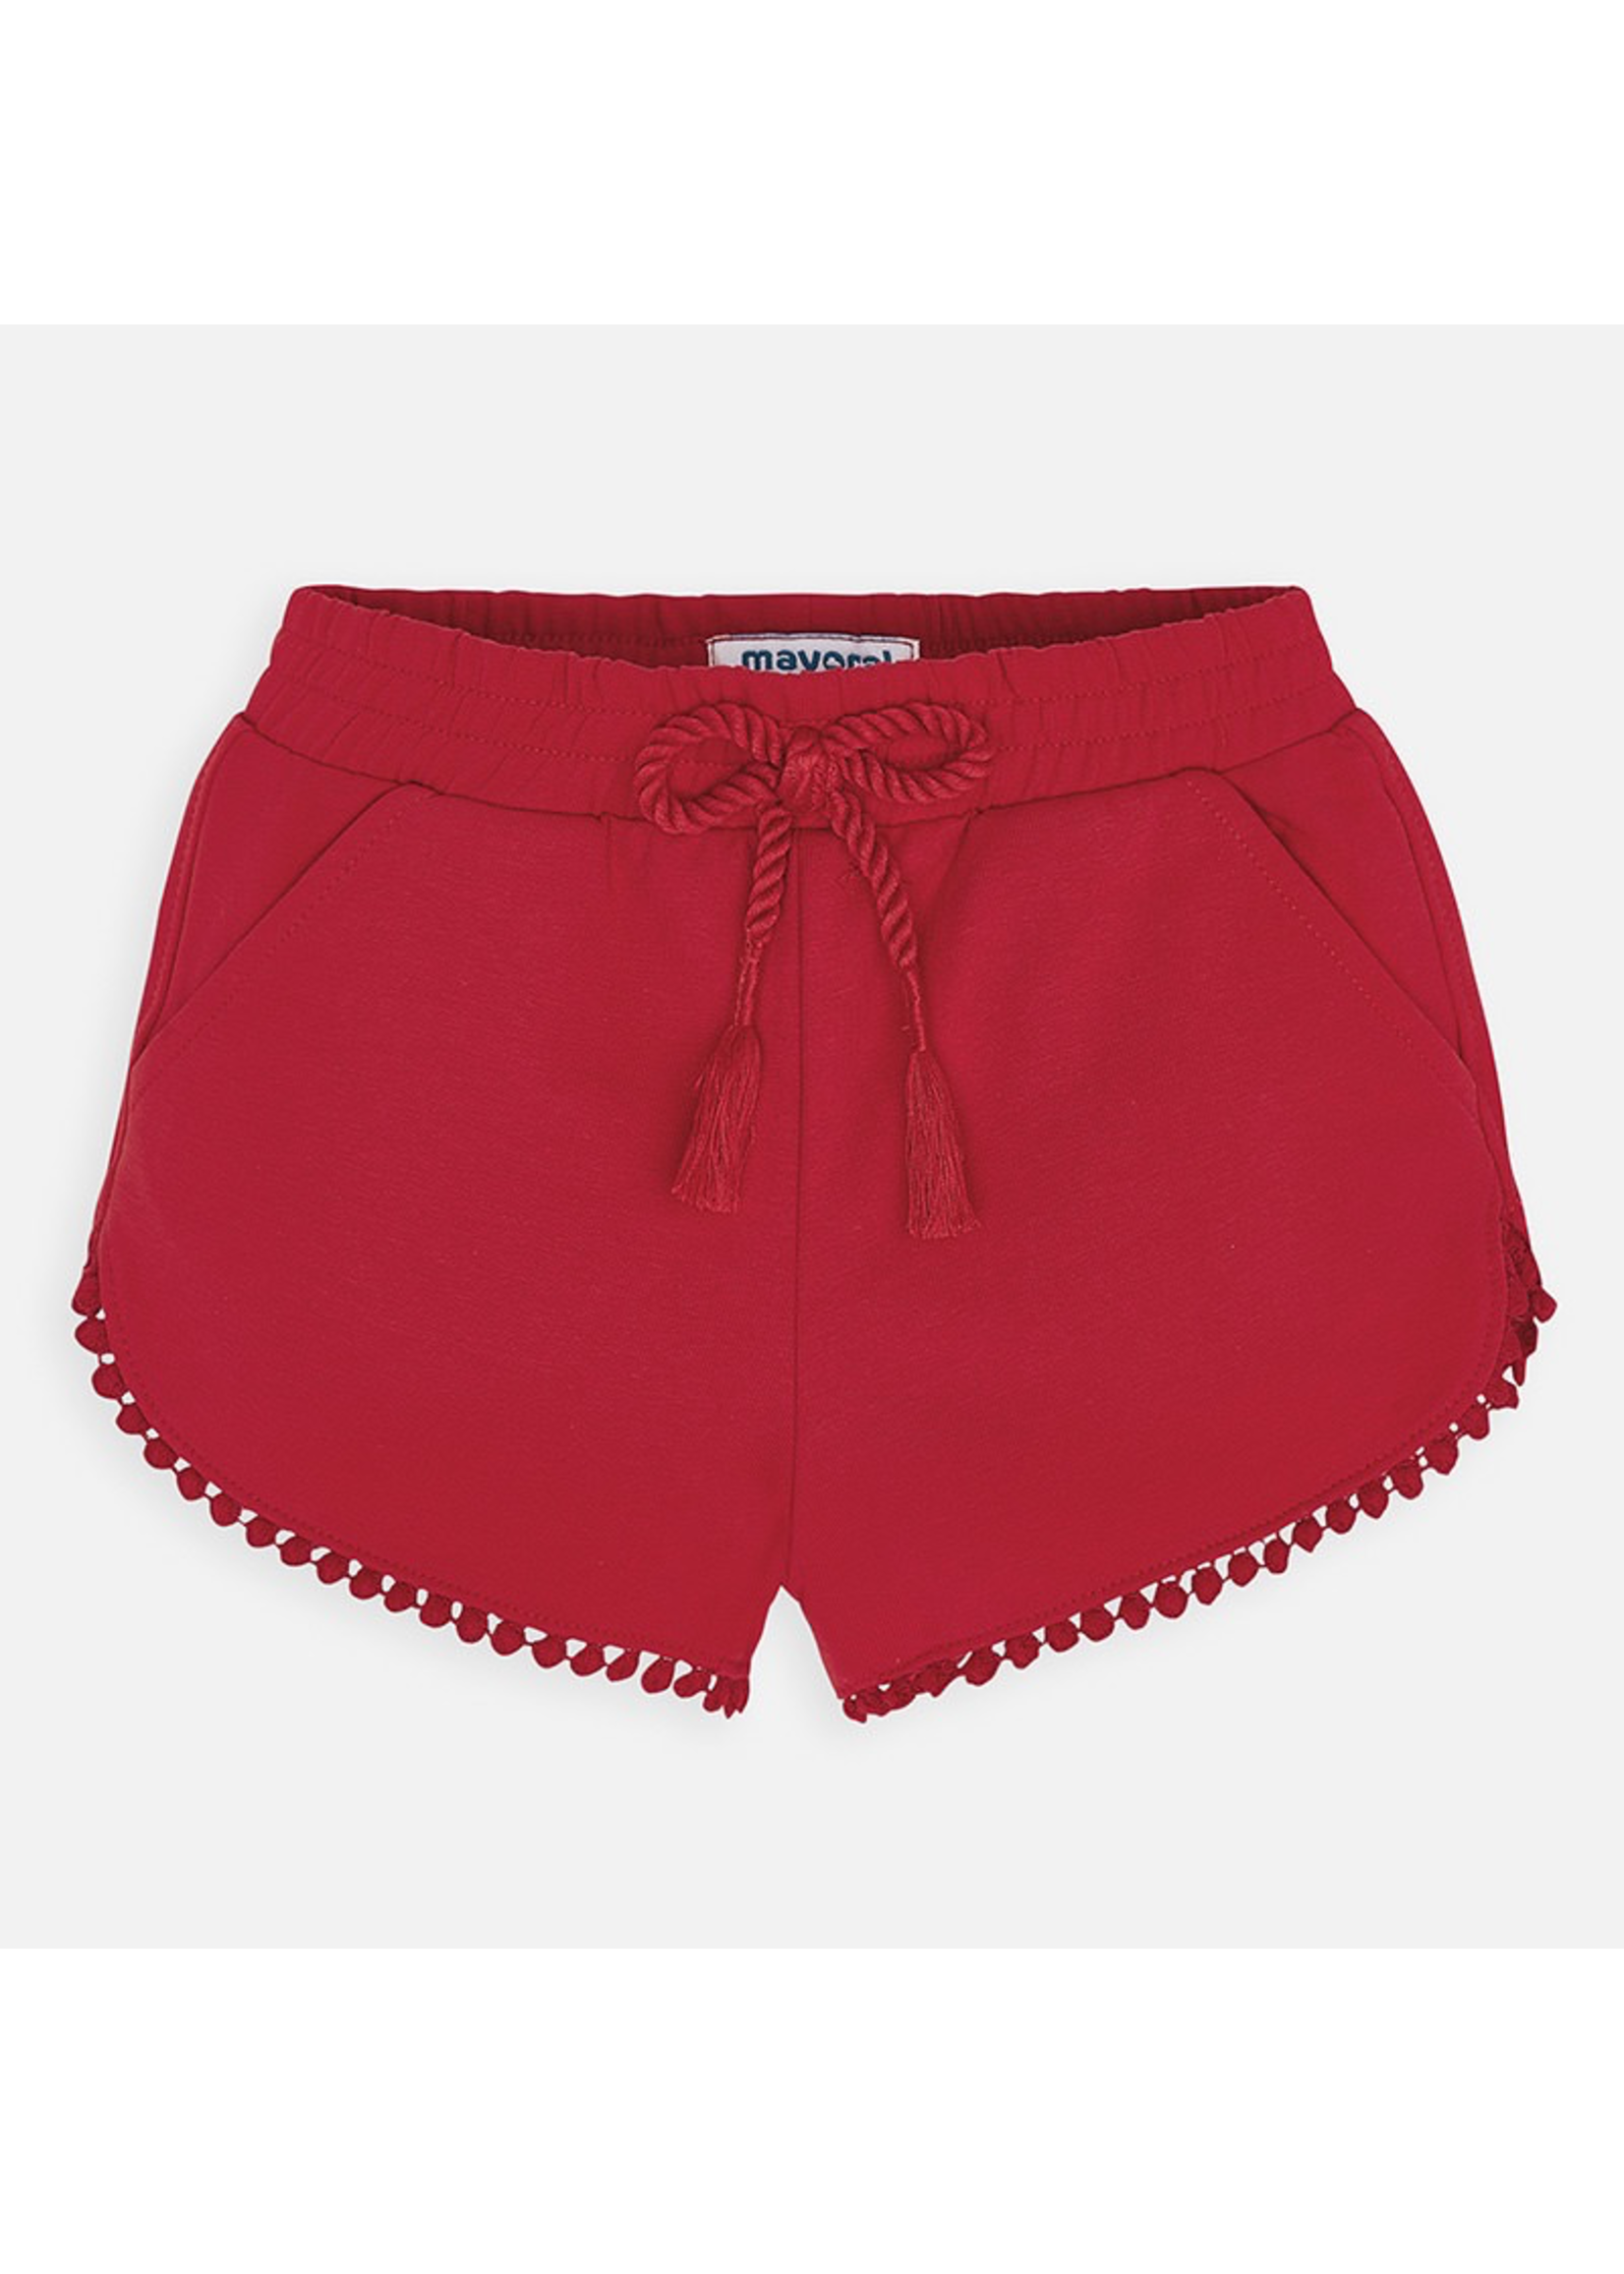 Mayoral Mayoral, Red Chenille Knit Shorts for Girls